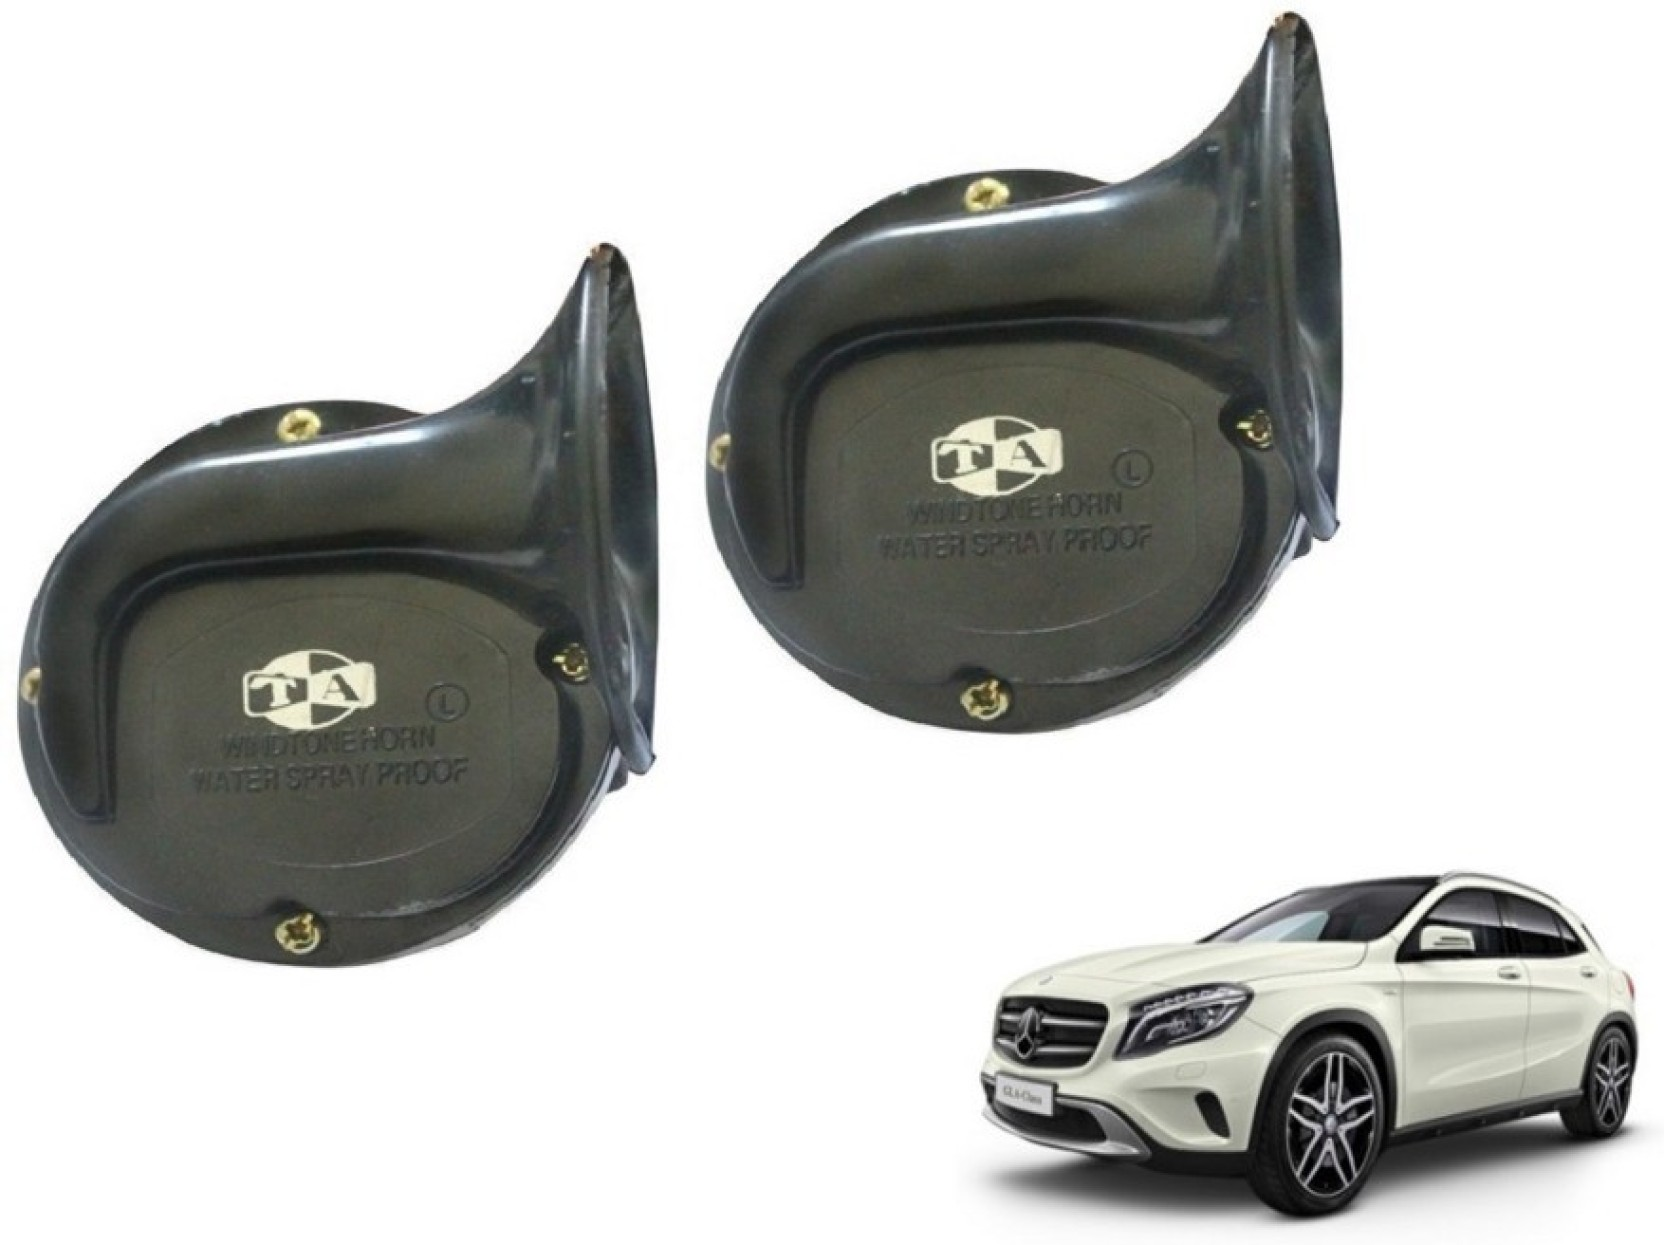 Mockhe Horn For Mercedes Benz Gla Class Price In India Buy Add To Cart